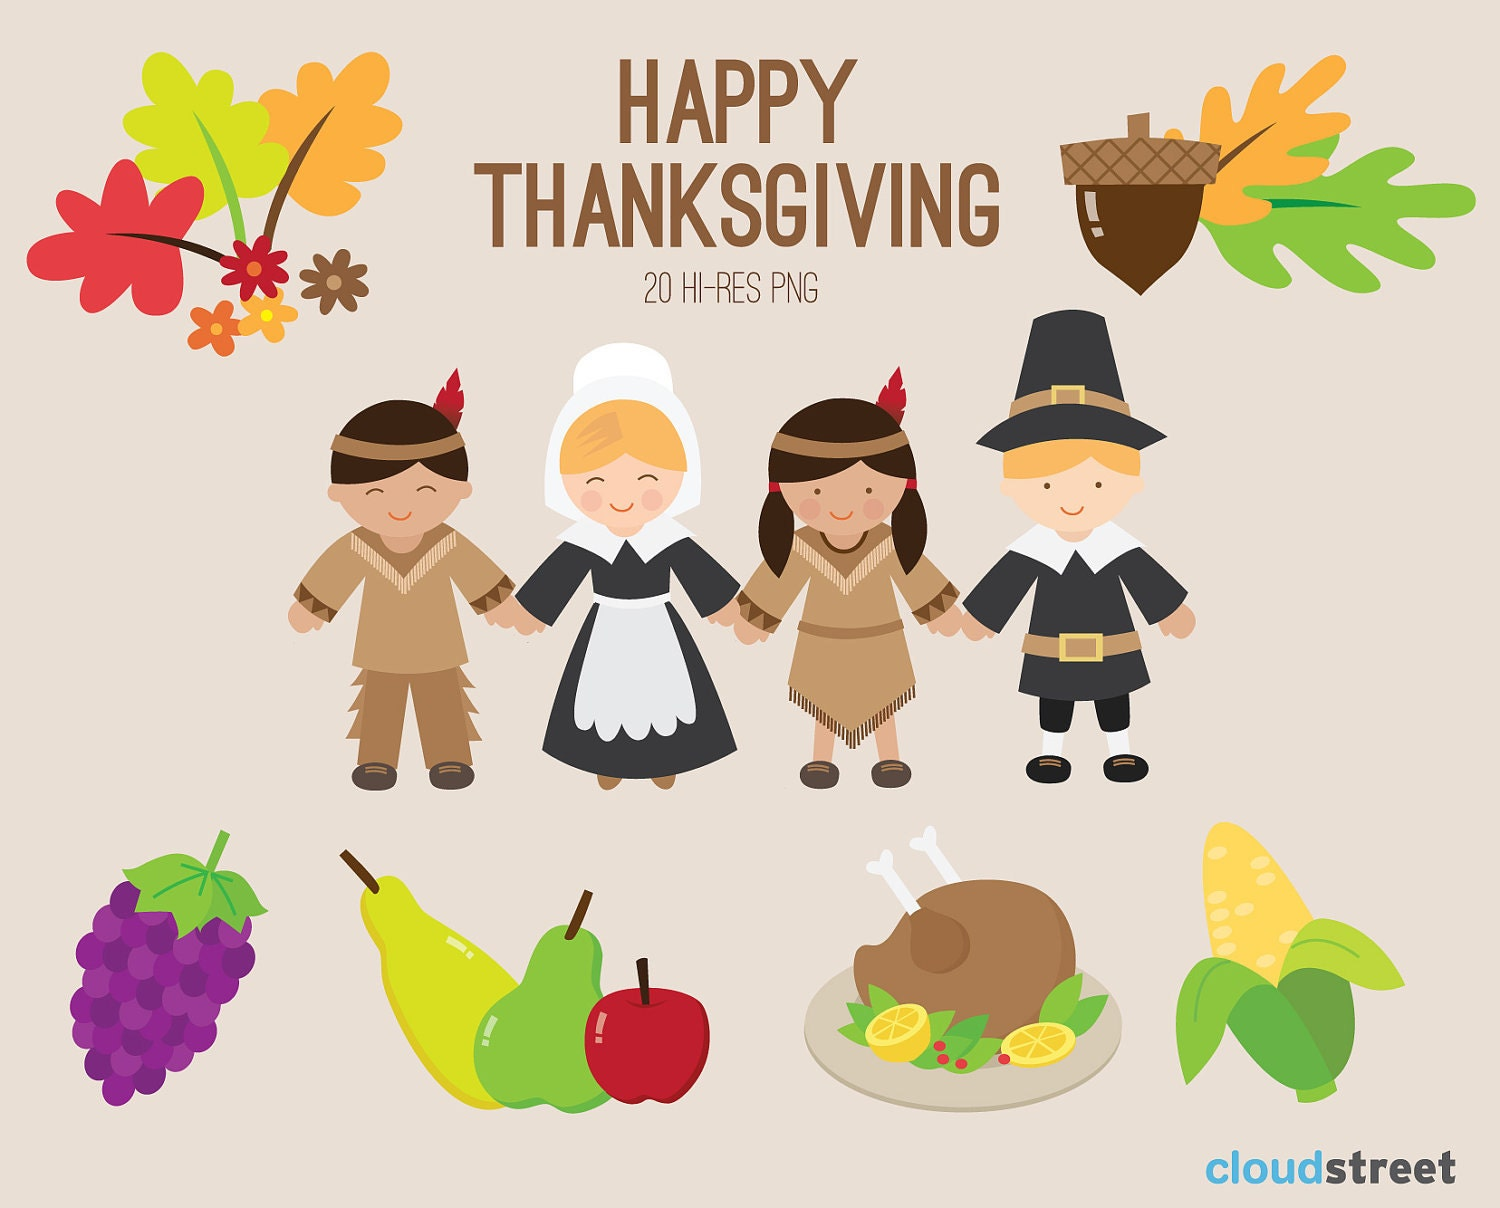 happy thanksgiving clip art - photo #5